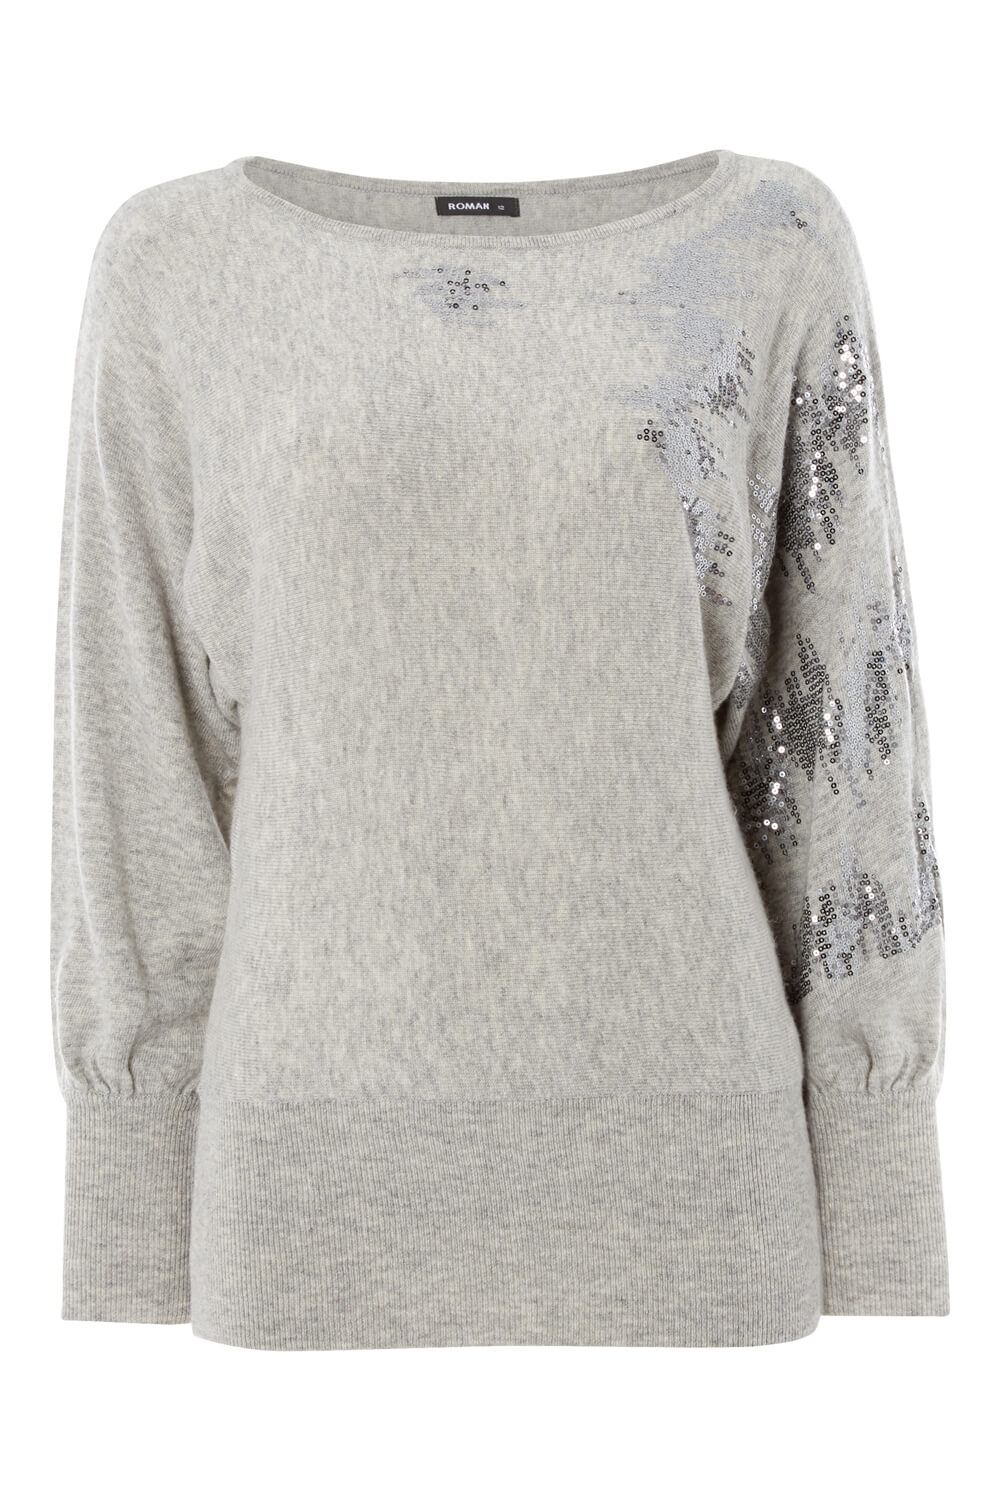 Roman-Originals-Women-039-s-Sequin-Embellished-Batwing-Sleeve-Boat-Neck-Jumper thumbnail 16